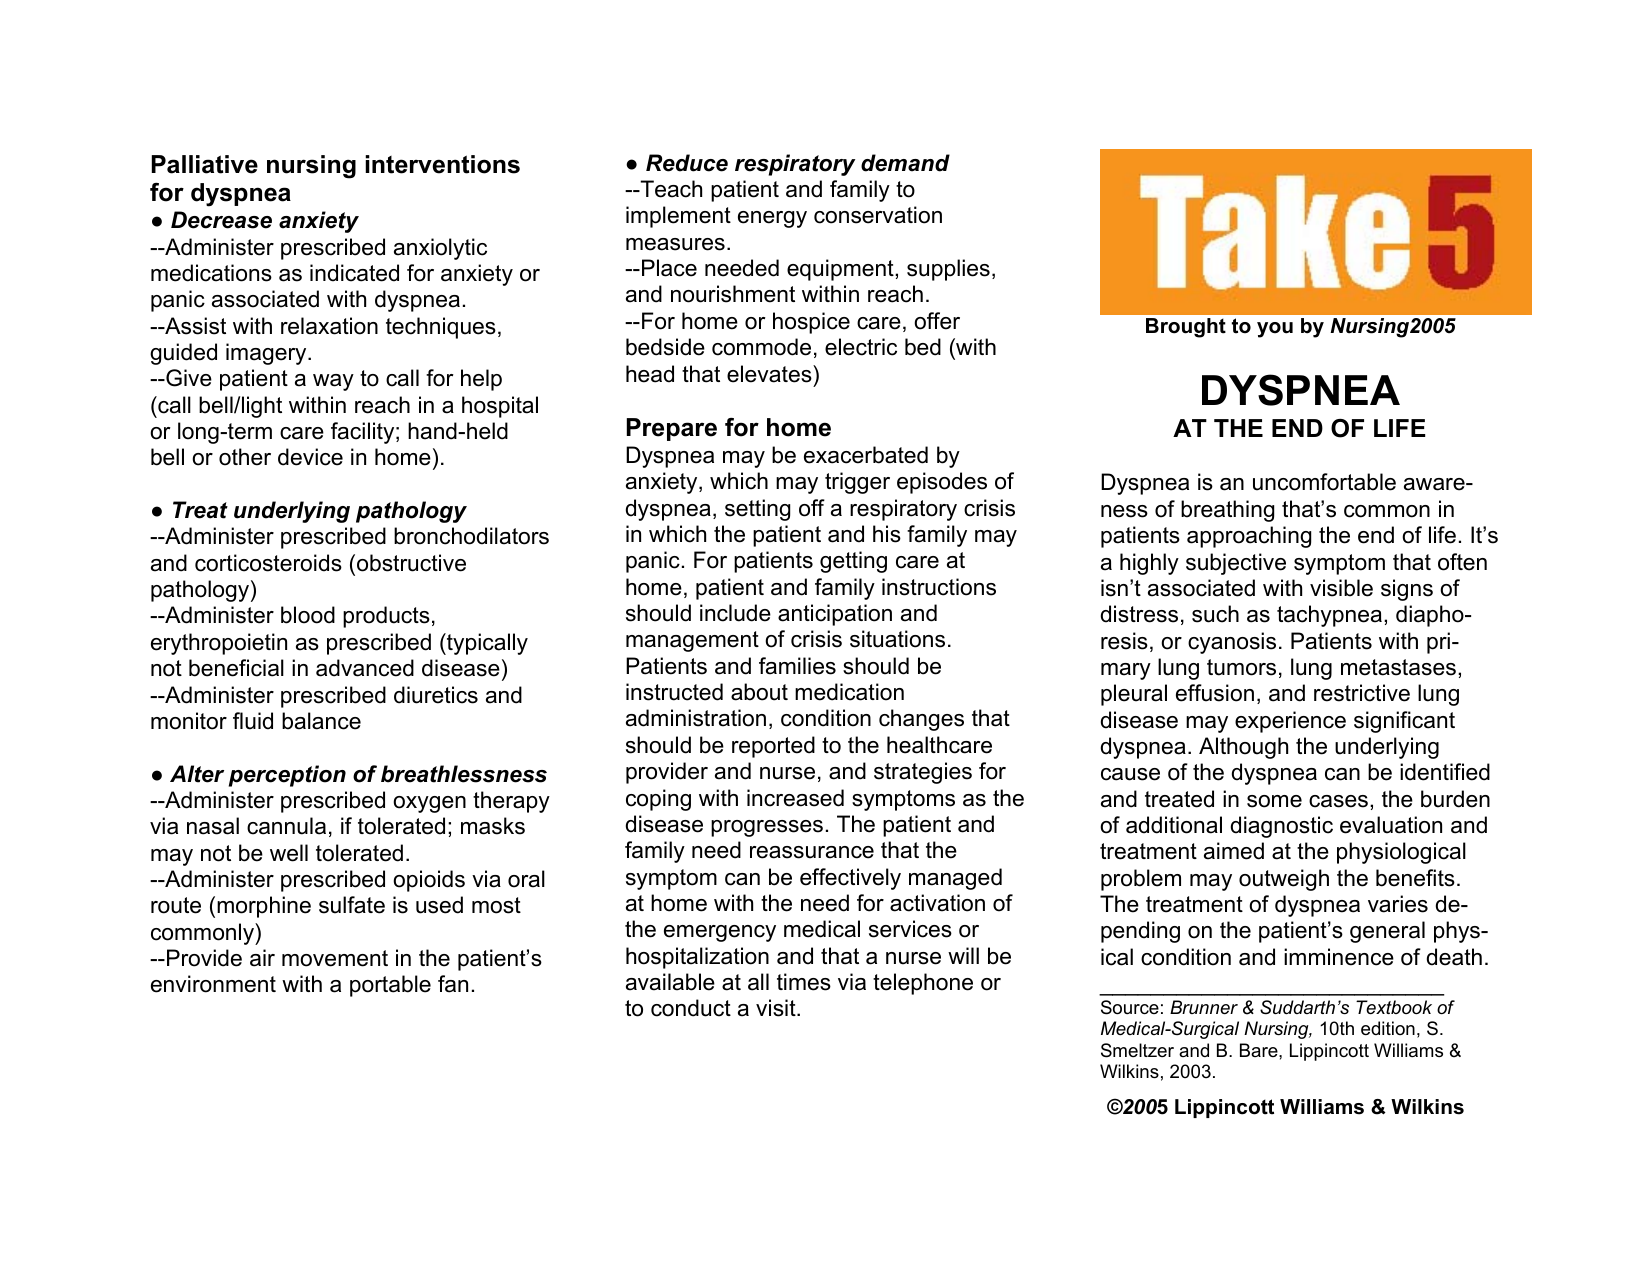 Take 5: Dyspnea - NursingCenter.com